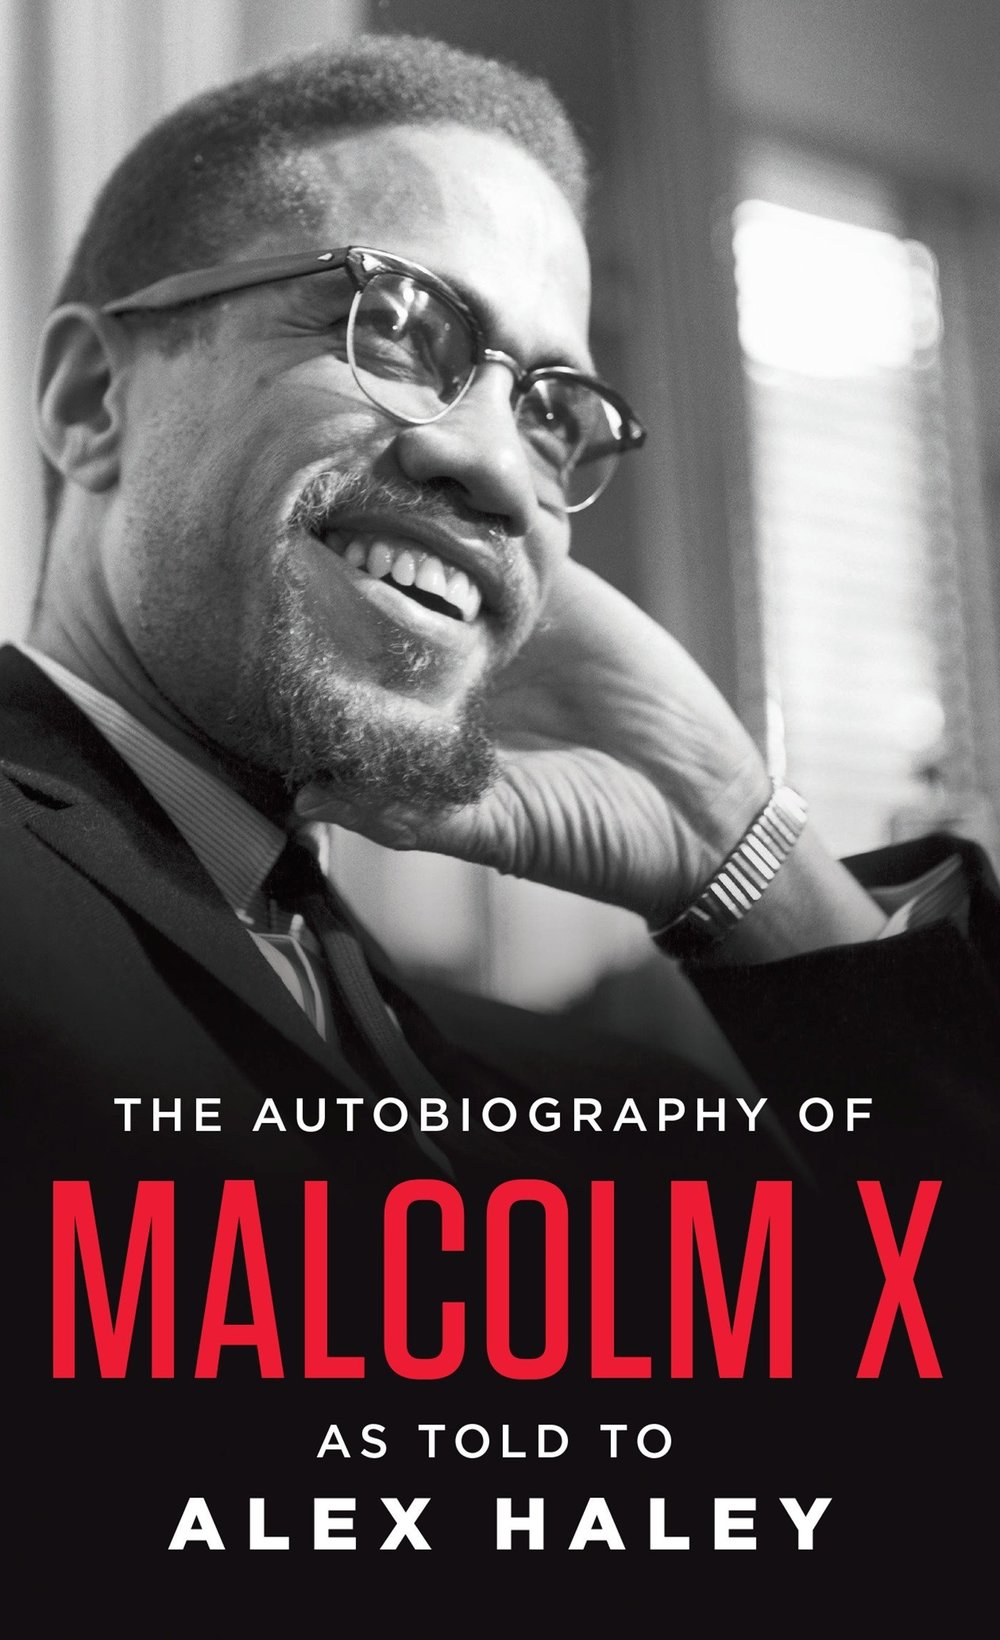 The Autobiography of Malcom X - As told to Alex Haley